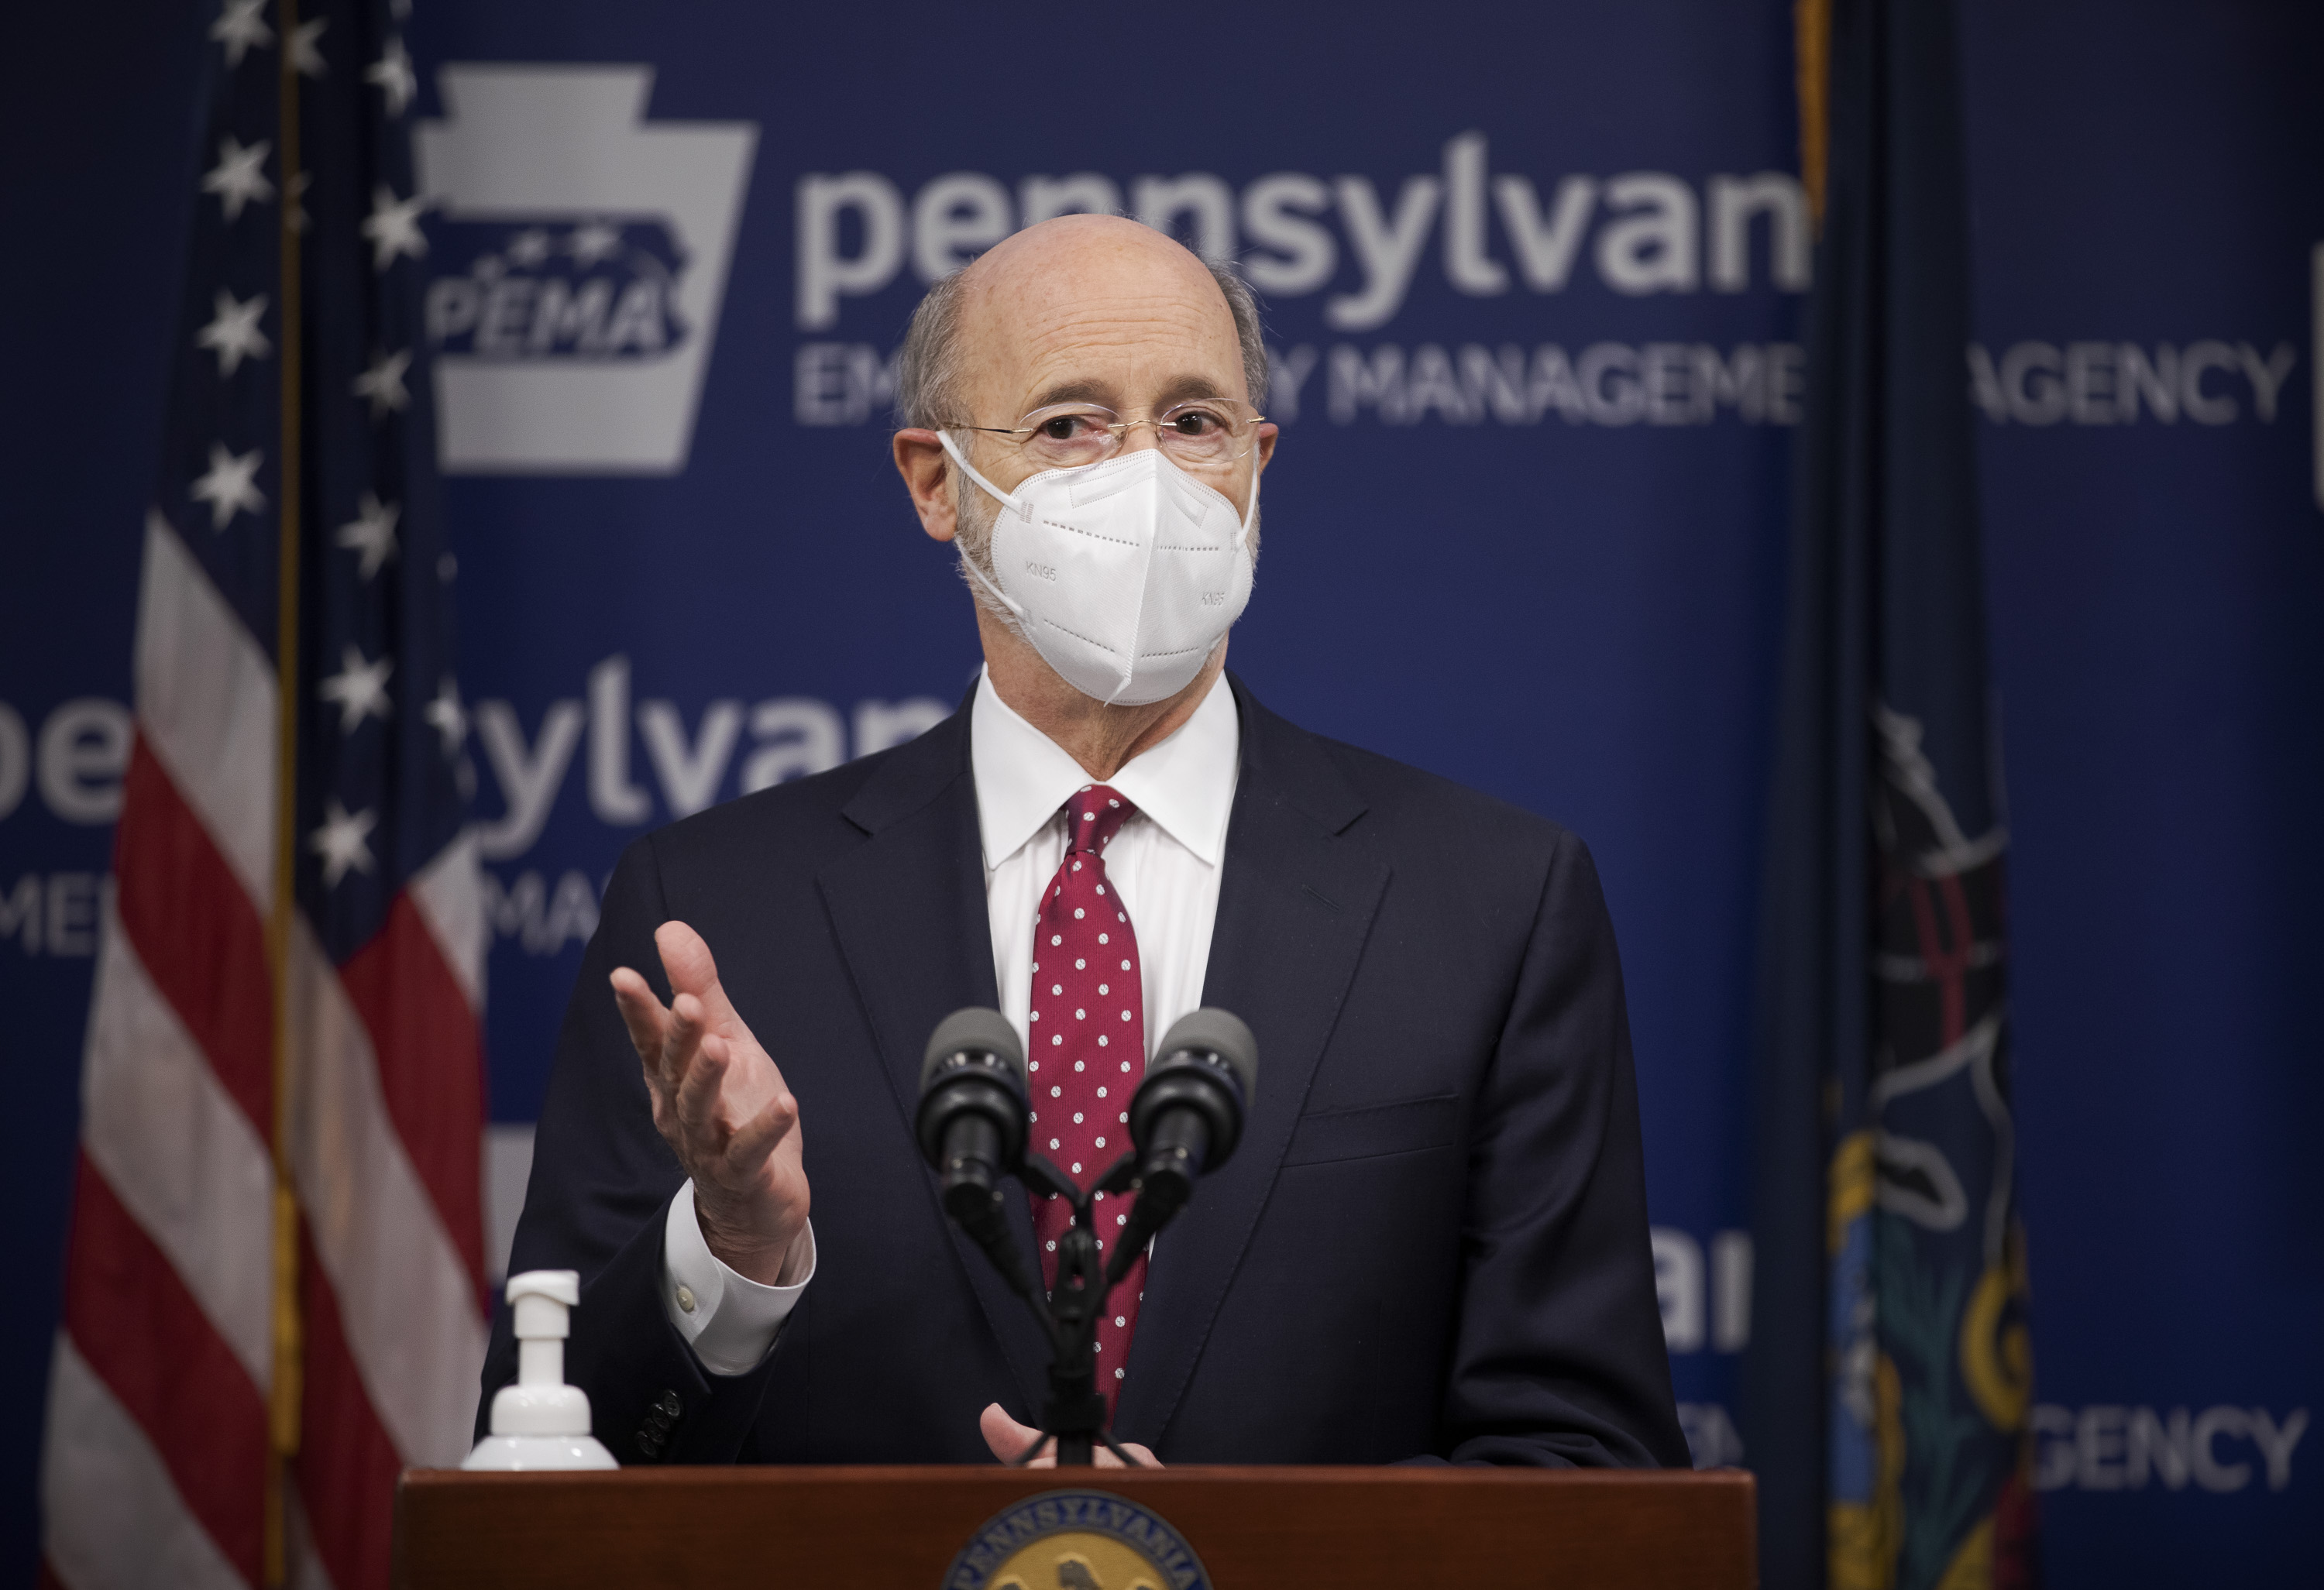 Gov. Tom Wolf, wearing a face mask, speaks to the press from behind a podium